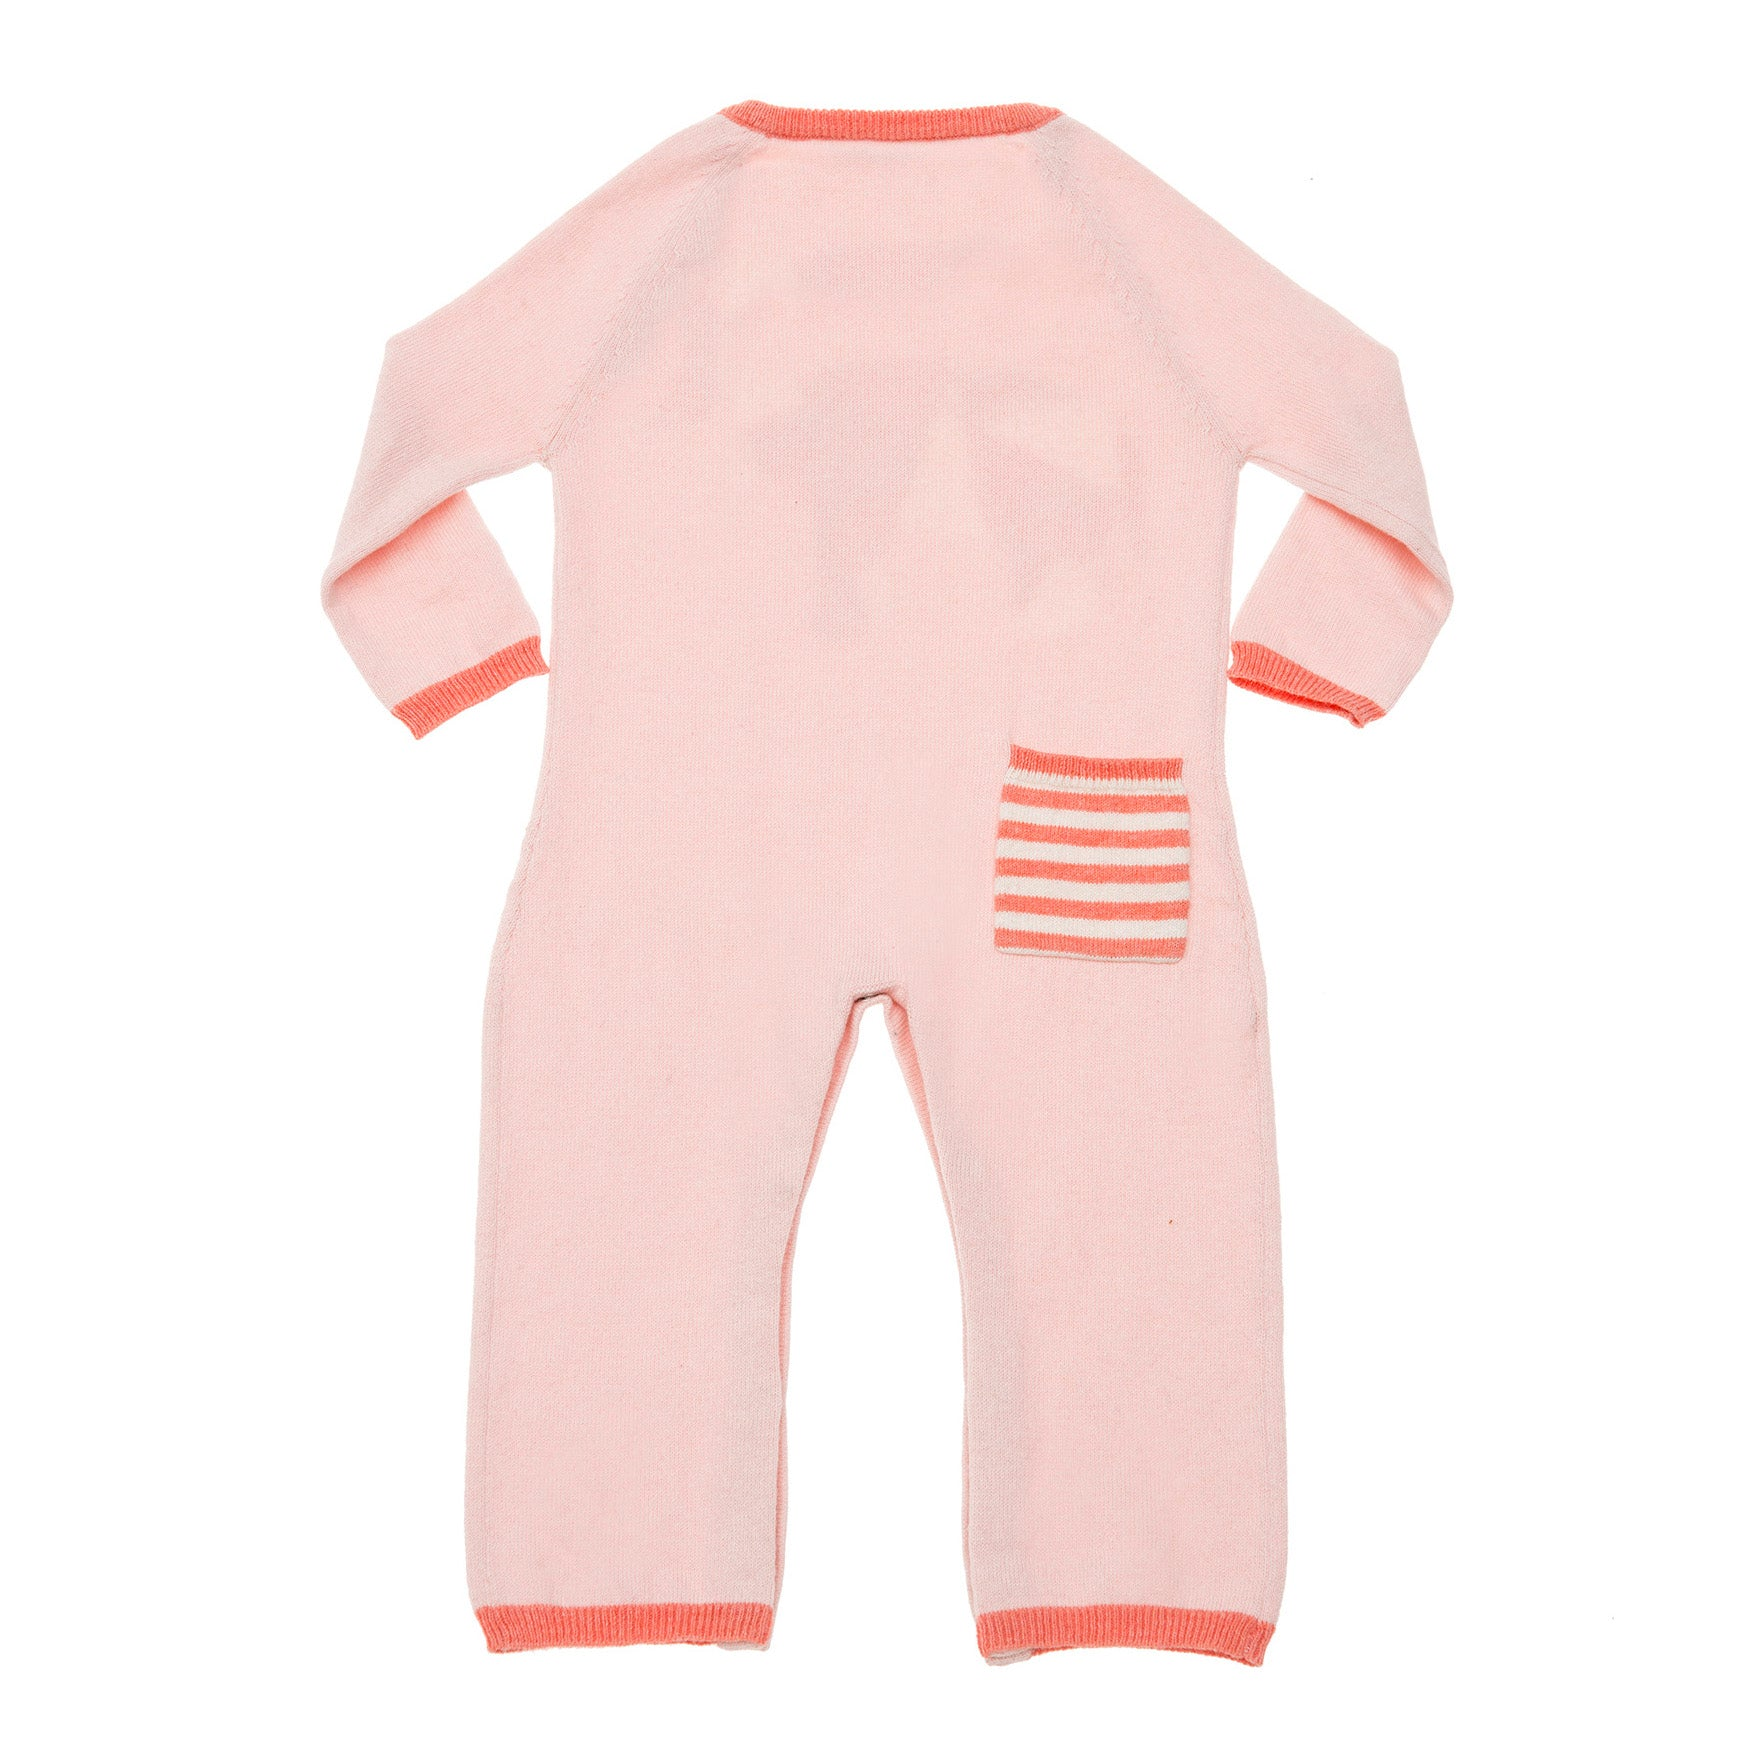 Geometric Elephant Coverall Pink